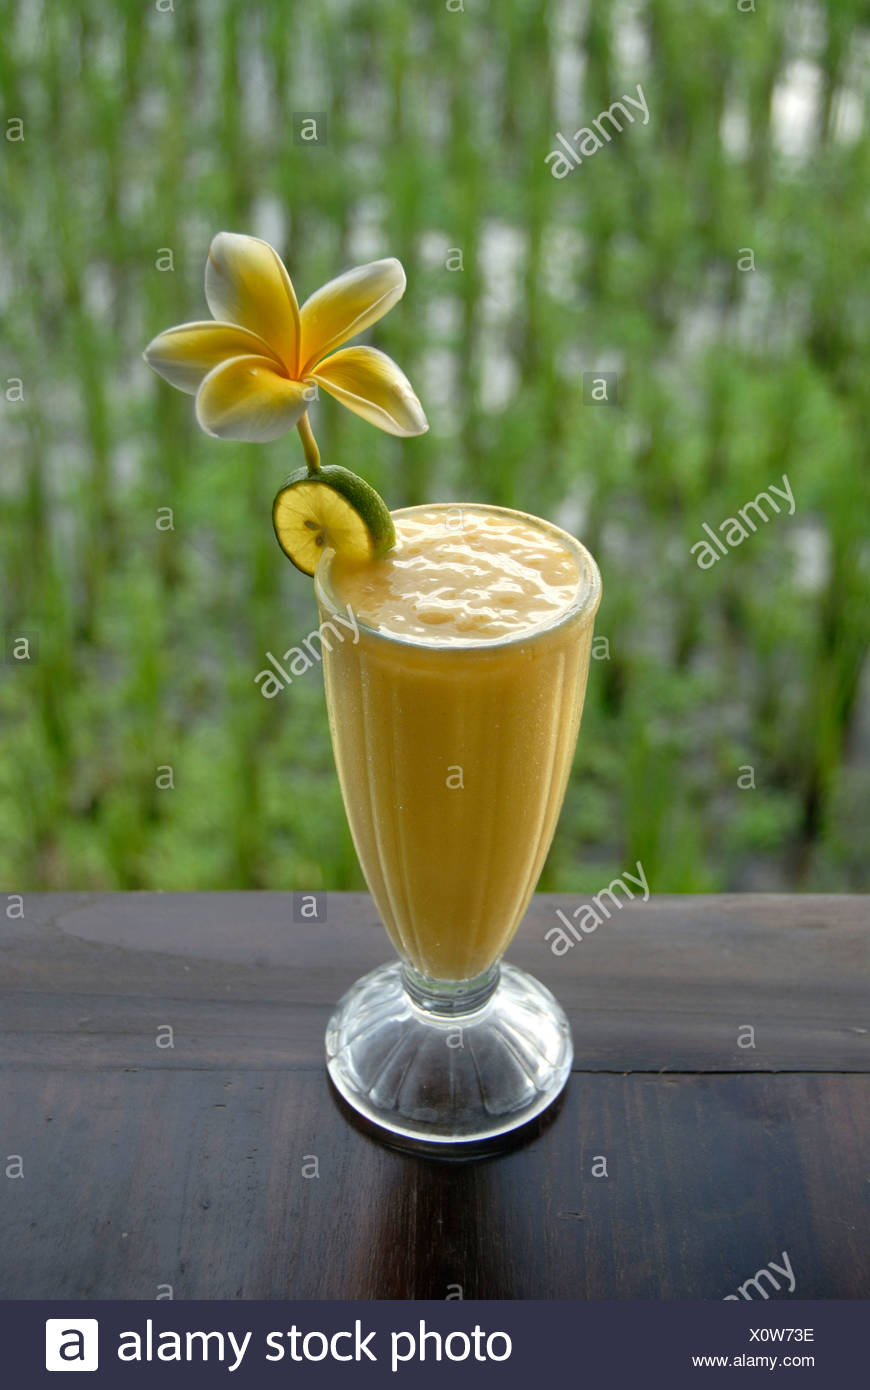 Soft drink, mango smoothie in a glass decorated with flowers, in front of a rice field in Ubud, Bali, Indonesia, Southeast Asia - Stock Image